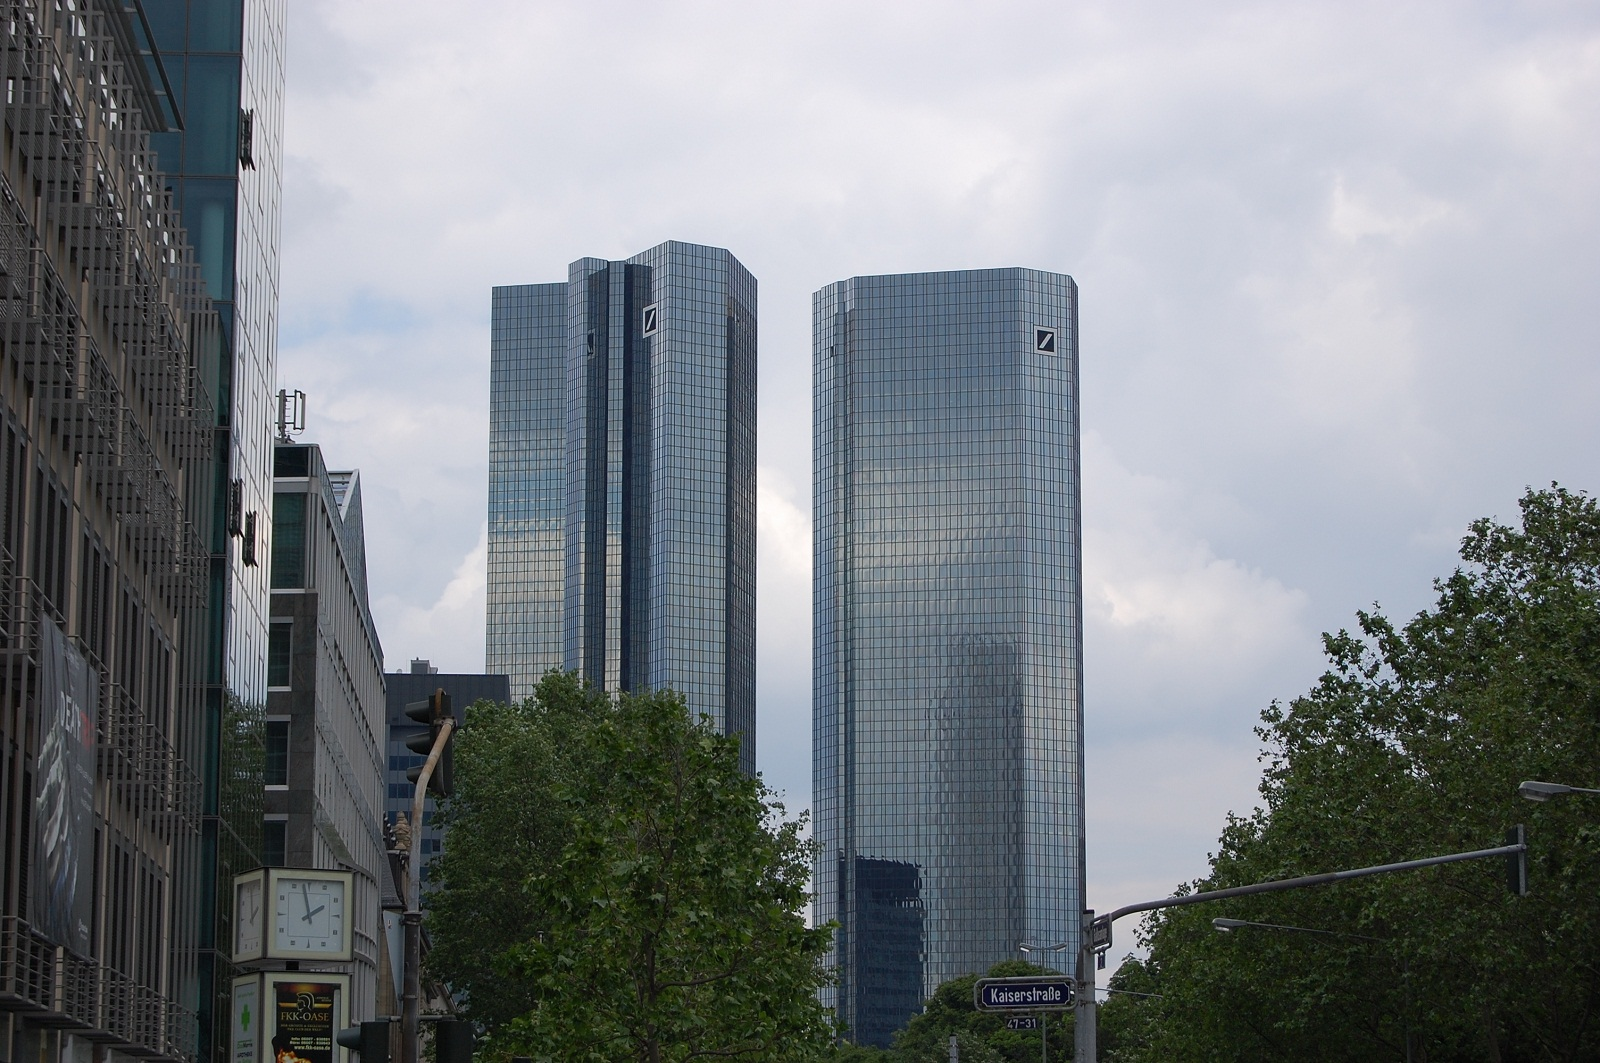 Frankfurt Architecture, Germany, Skyscrapers (3)